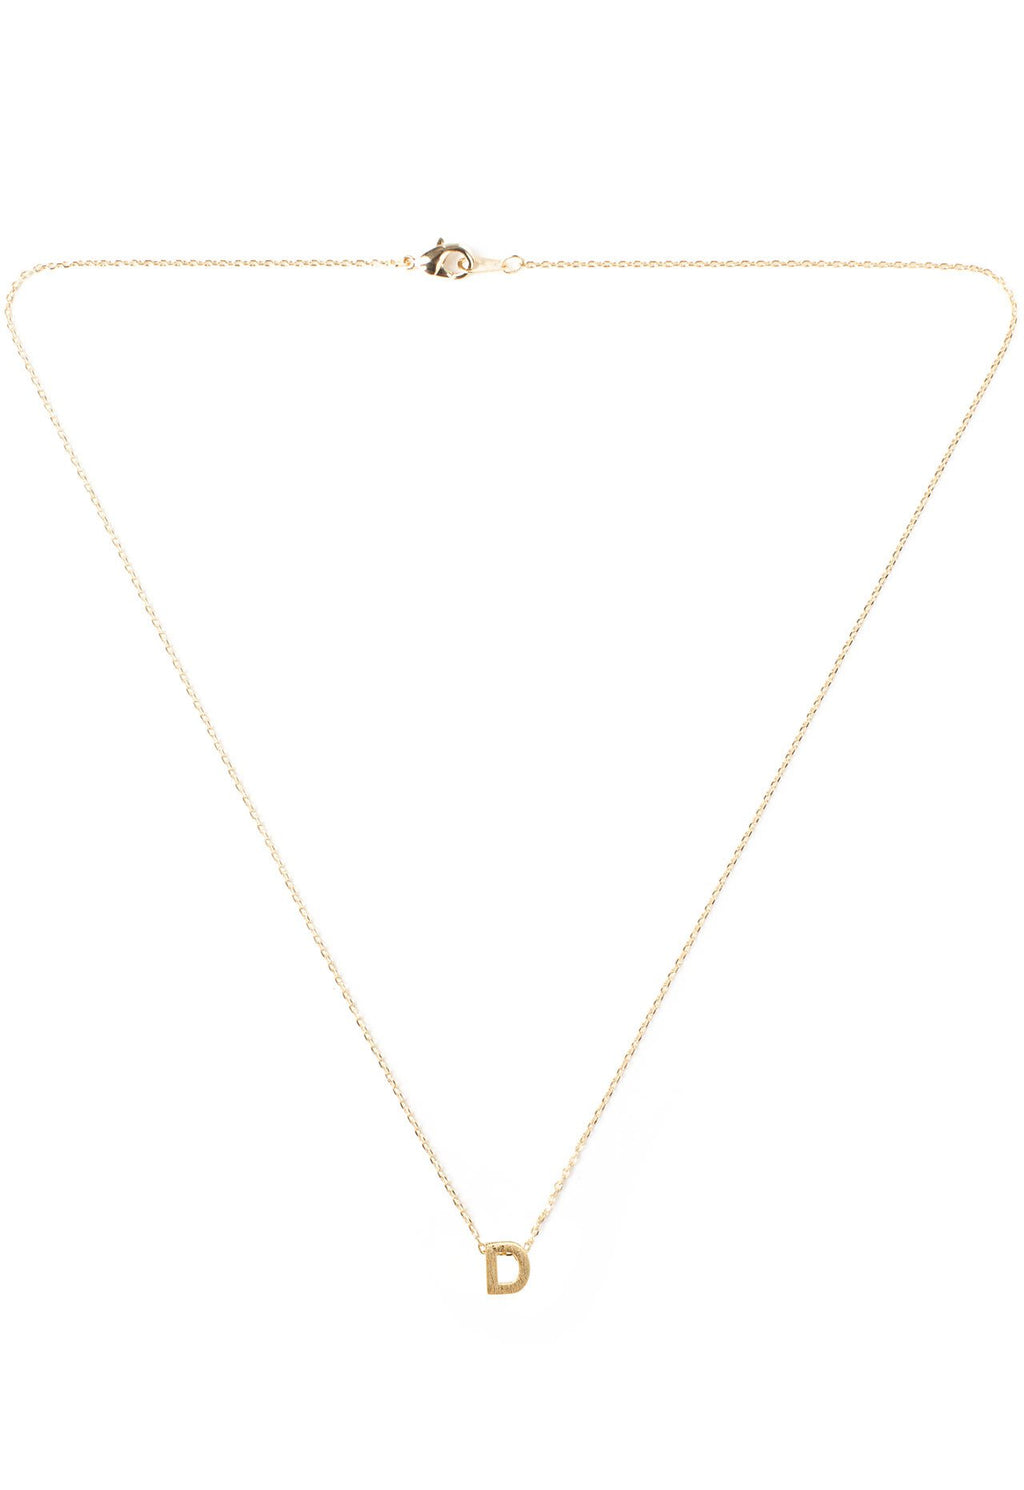 Jewelry - Be Yourself Initial Necklace - D